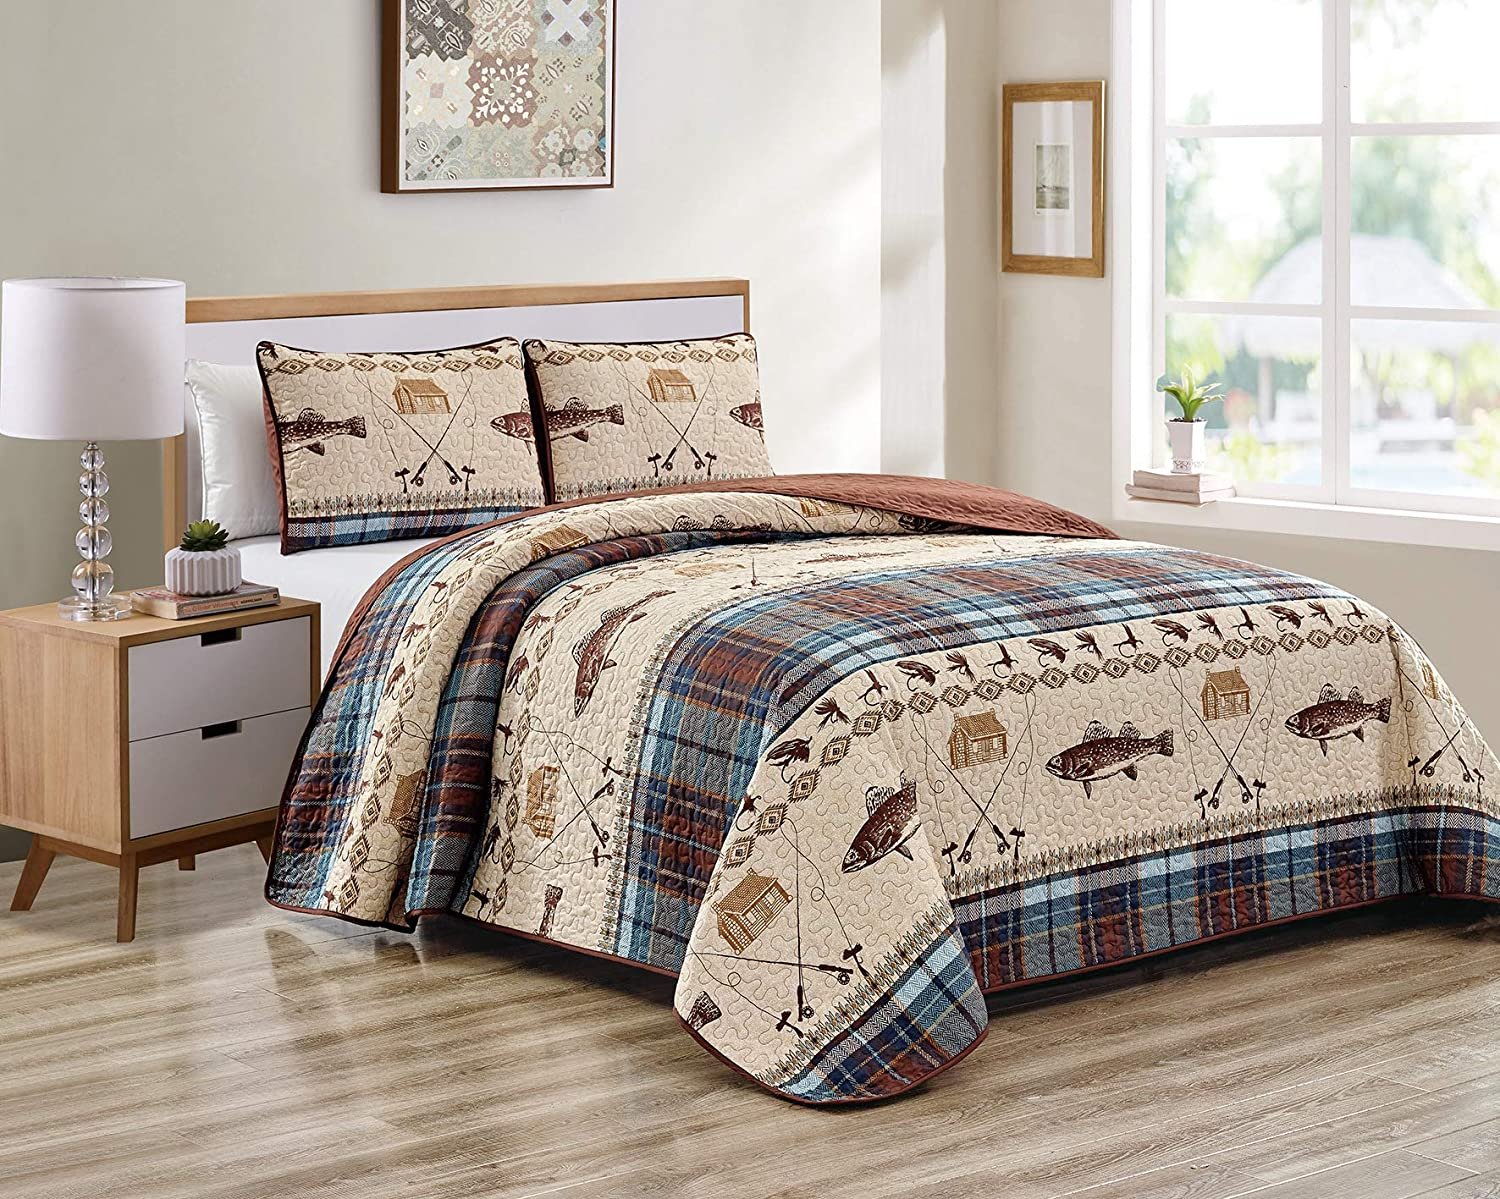 River Fly Fishing Themed Rustic Cabin Lodge Quilt Stitched Bedspread Bedding Set with Fishing Rods Lure with Southwestern Tartan Check Plaid Tweed Patterns Blue Brown - River Lodge (Twin)